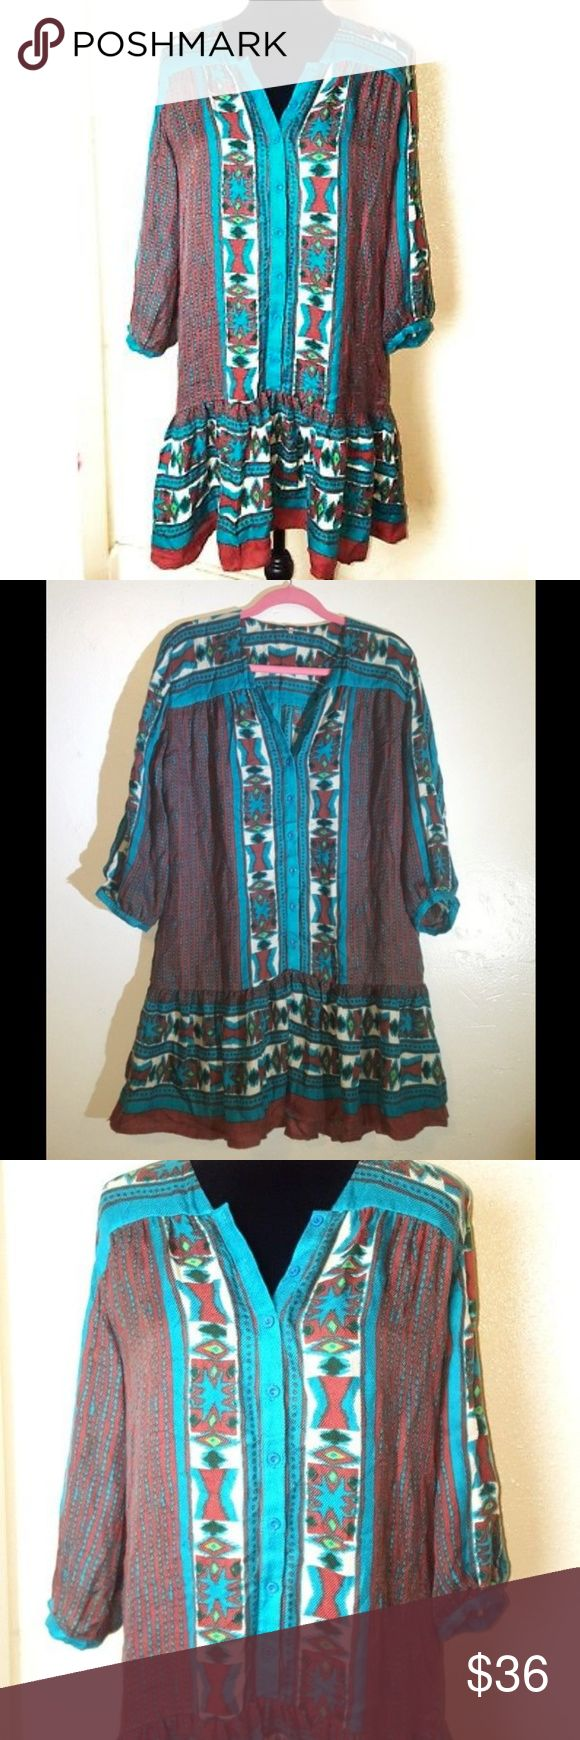 Free People Teal Orange Boho Tribal Festival Dress Sz L Measurements Bust 46 inches Length 37 inches 100% Acrylic Lightweight 3/4 Sleeves Free People Dresses